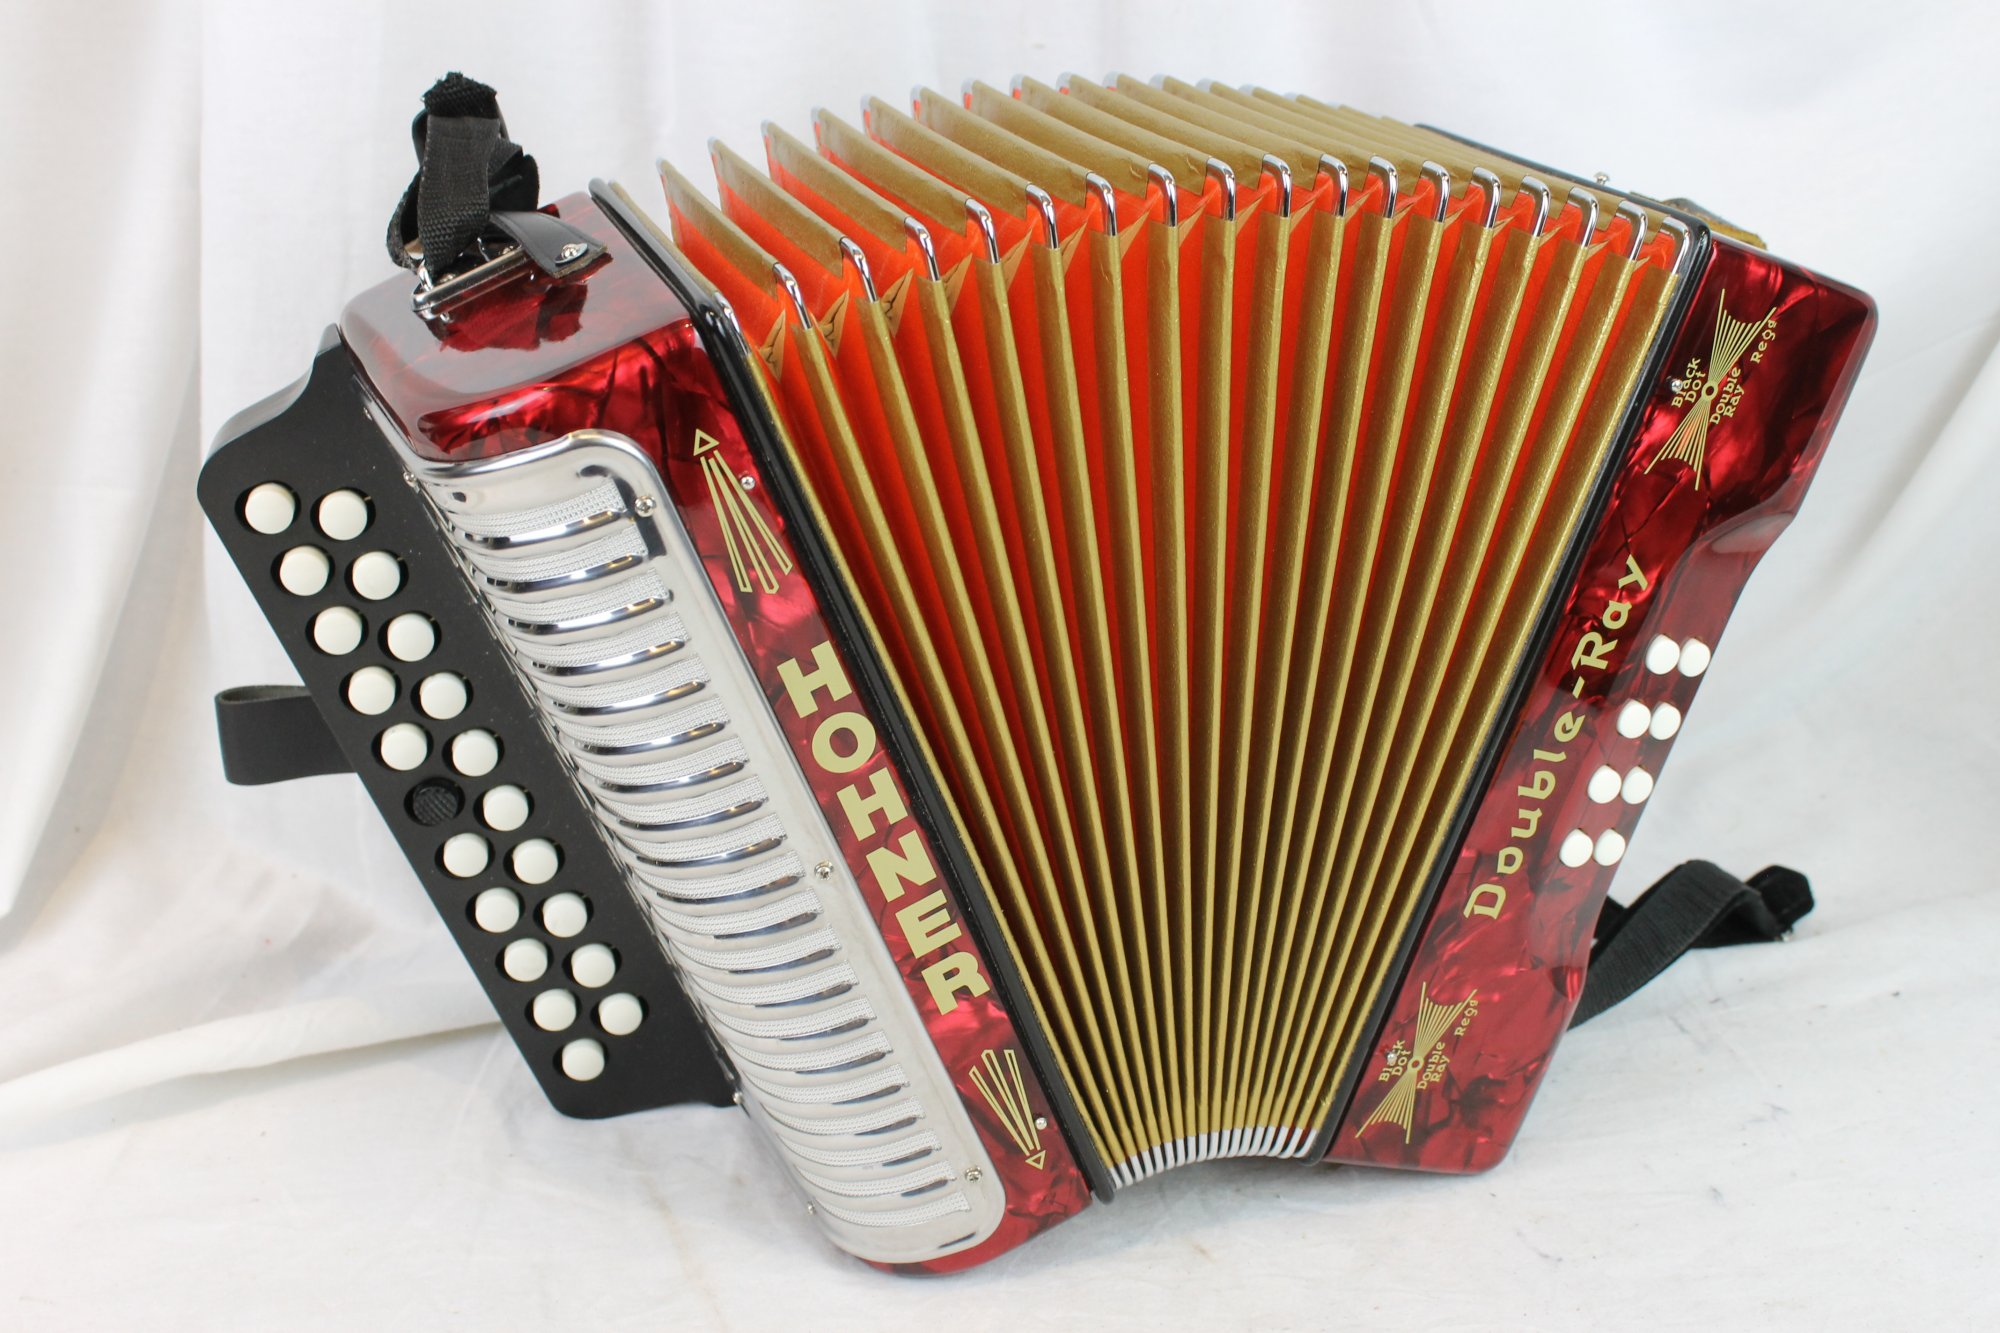 3095 - Red Hohner Double Ray Button Accordion BC MM 21 8